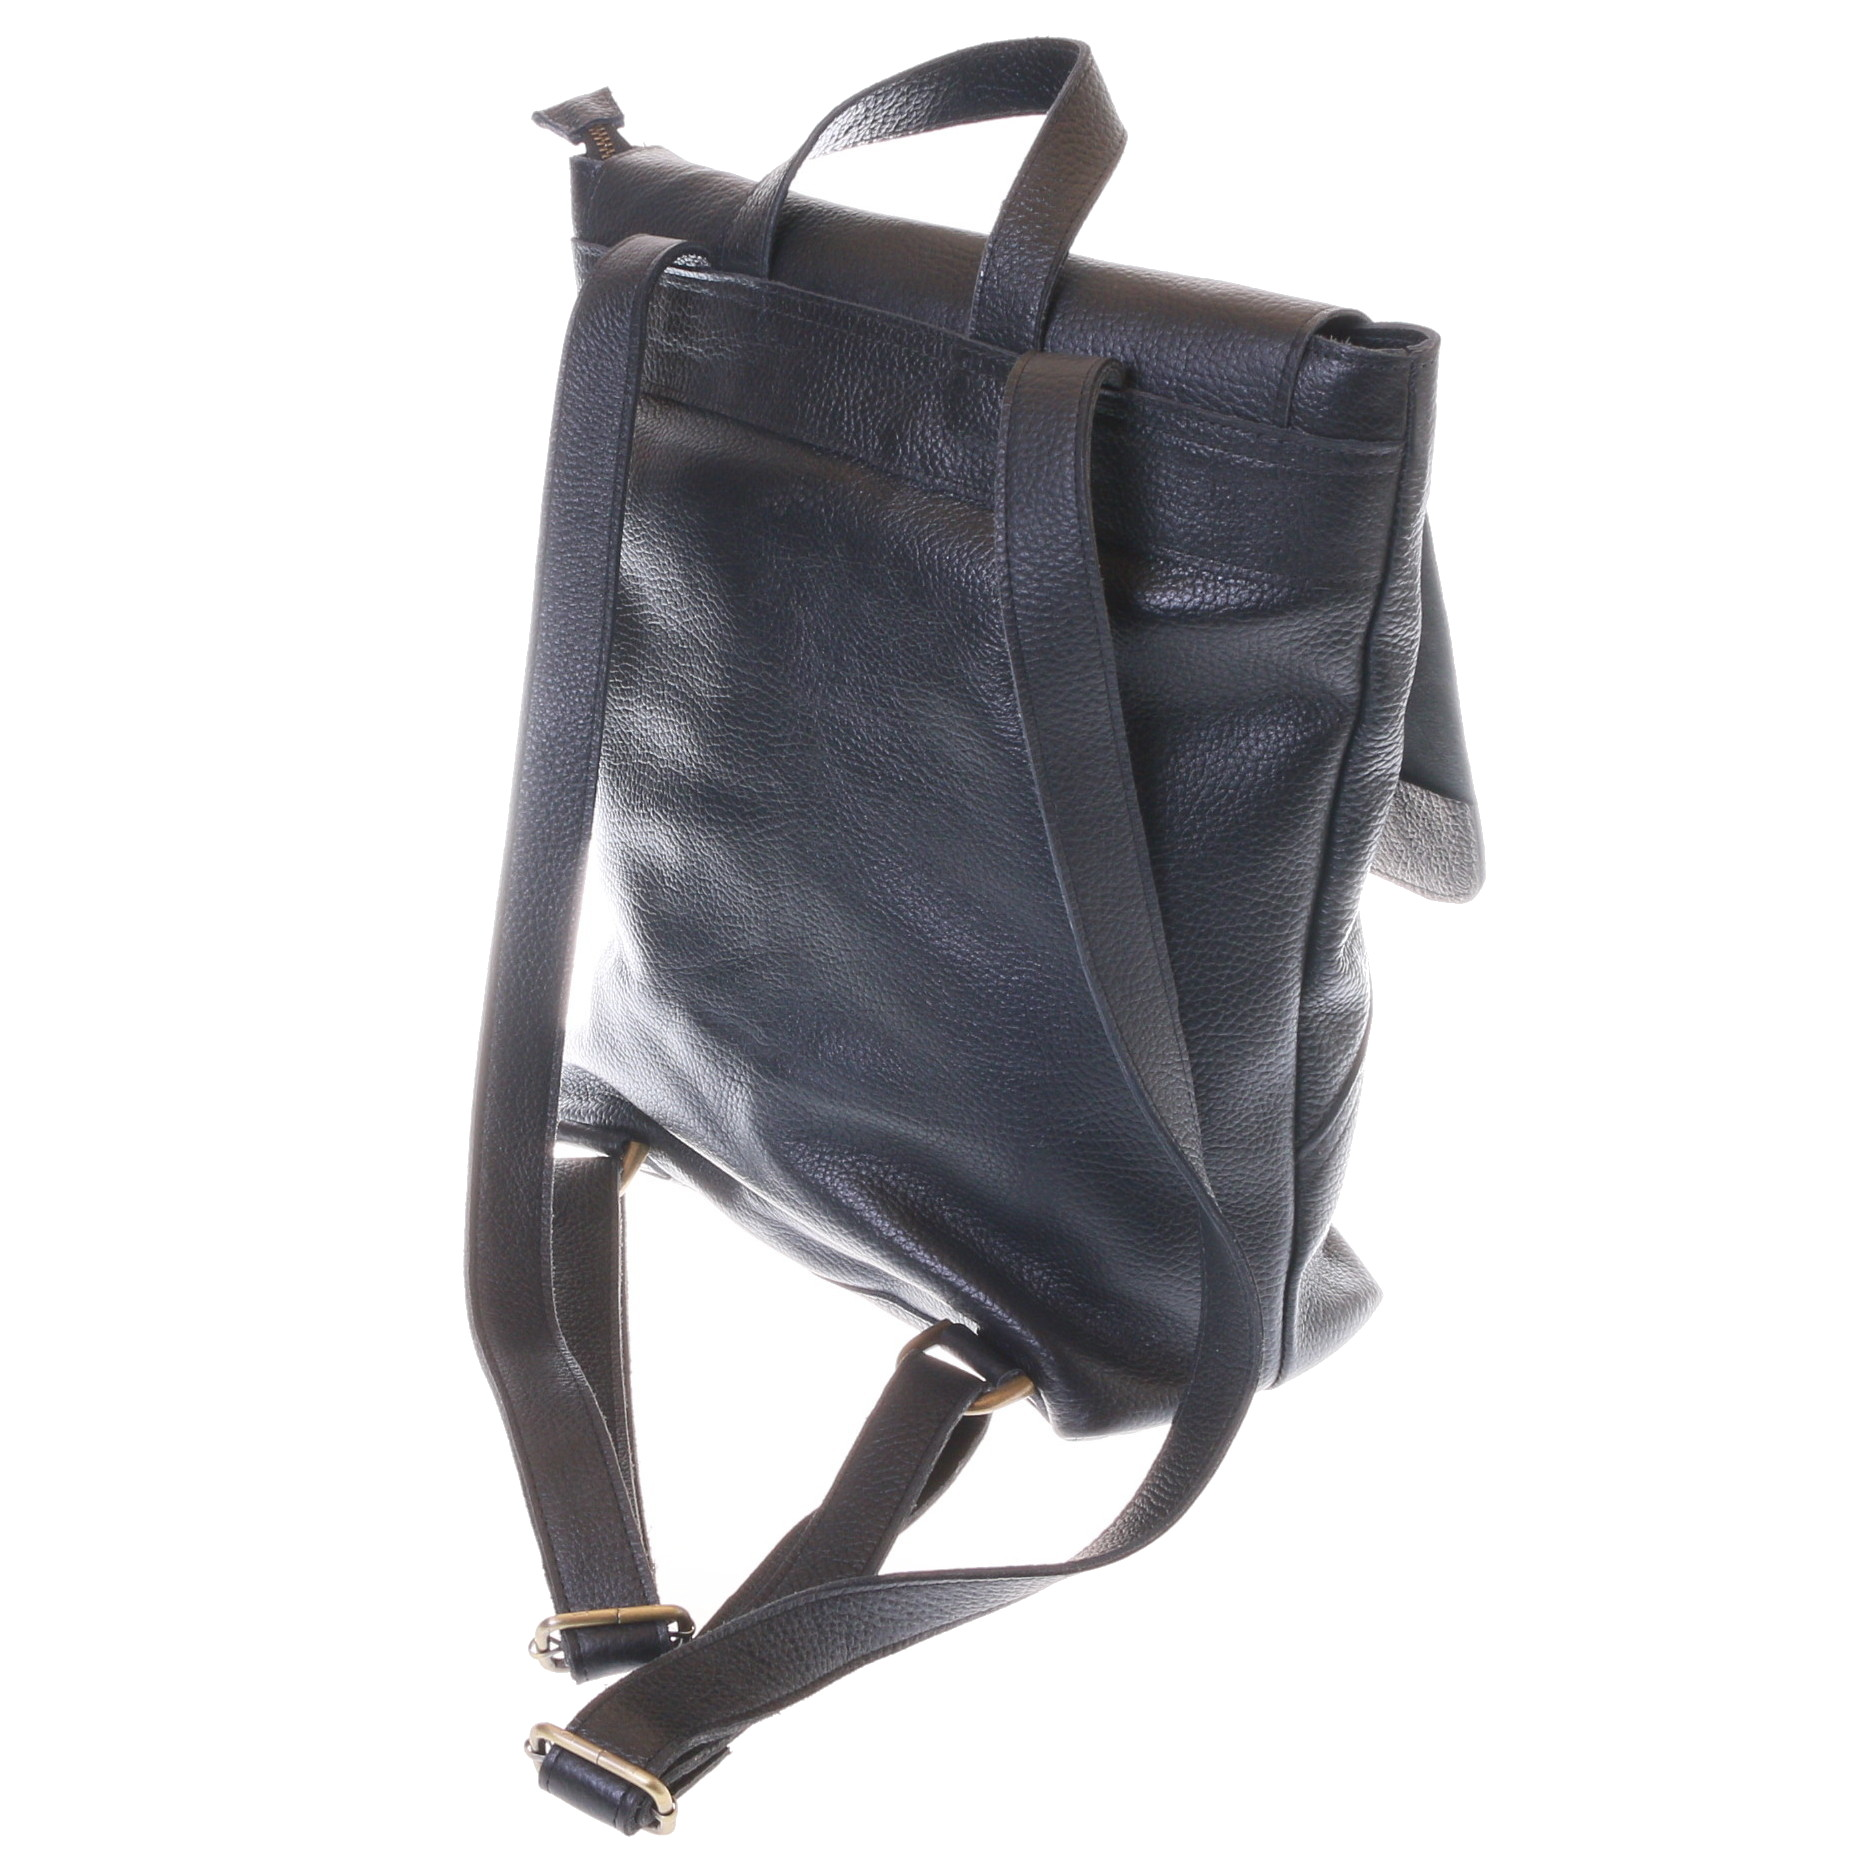 Gundara - fair black cow leather backpack - fairtrade and handmade from Ethiopia